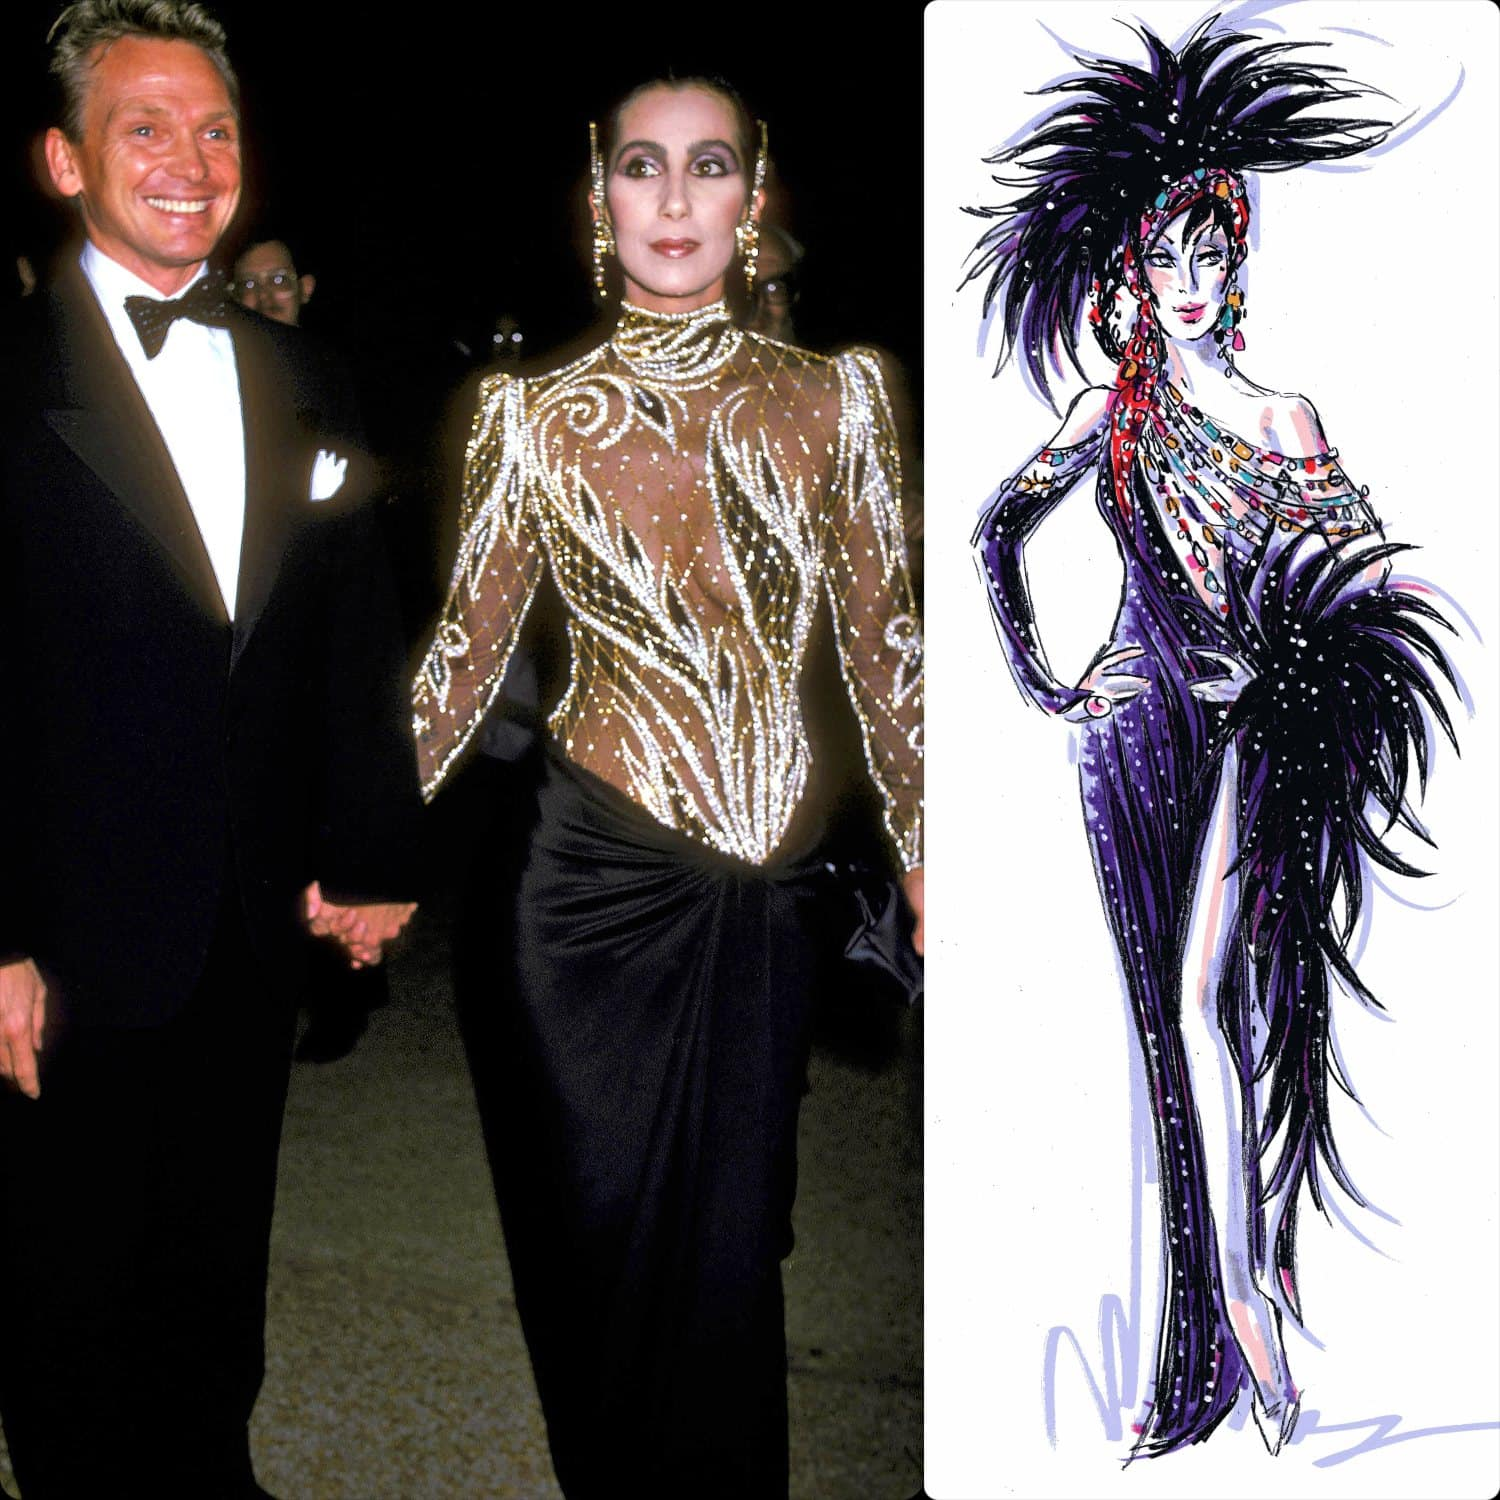 Bob Mackie and Cher - friendship of a lifetime